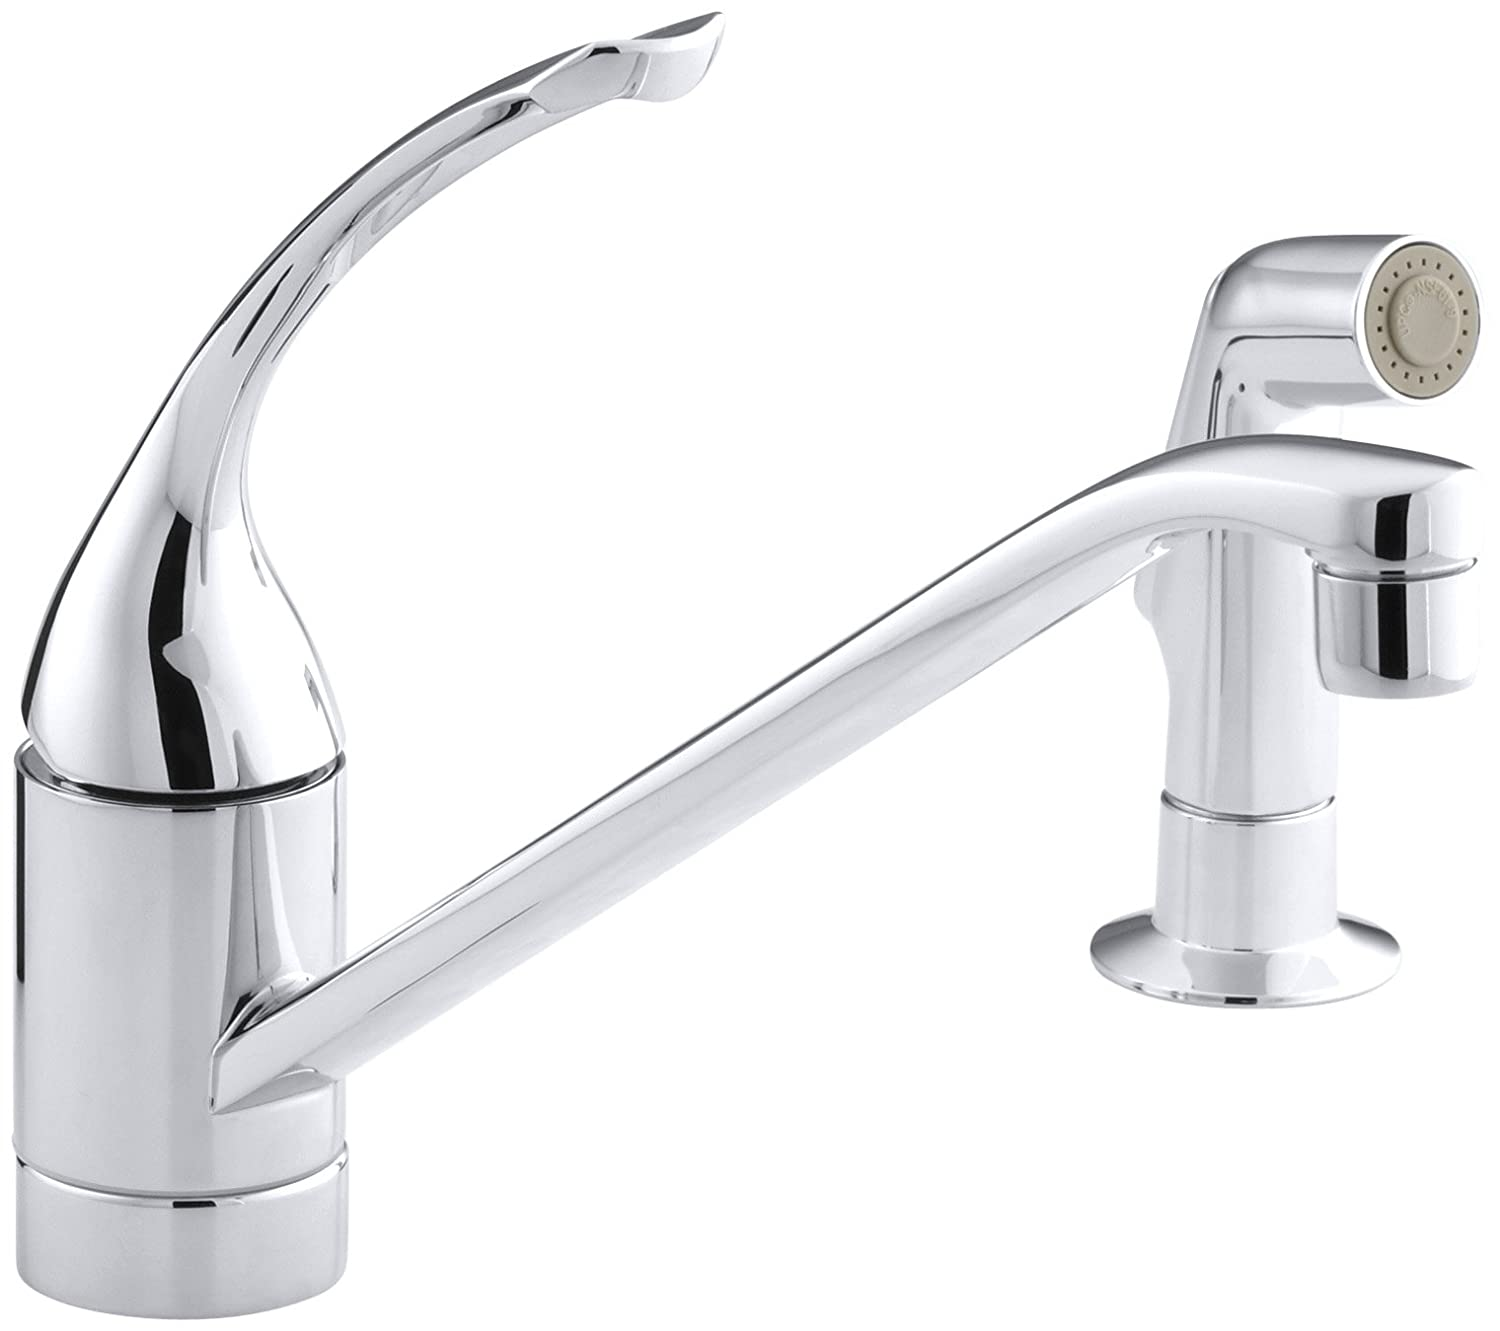 kohler k 15176 fl cp coralais single control kitchen sink faucet kohler k 15176 fl cp coralais single control kitchen sink faucet polished chrome touch on kitchen sink faucets amazon com